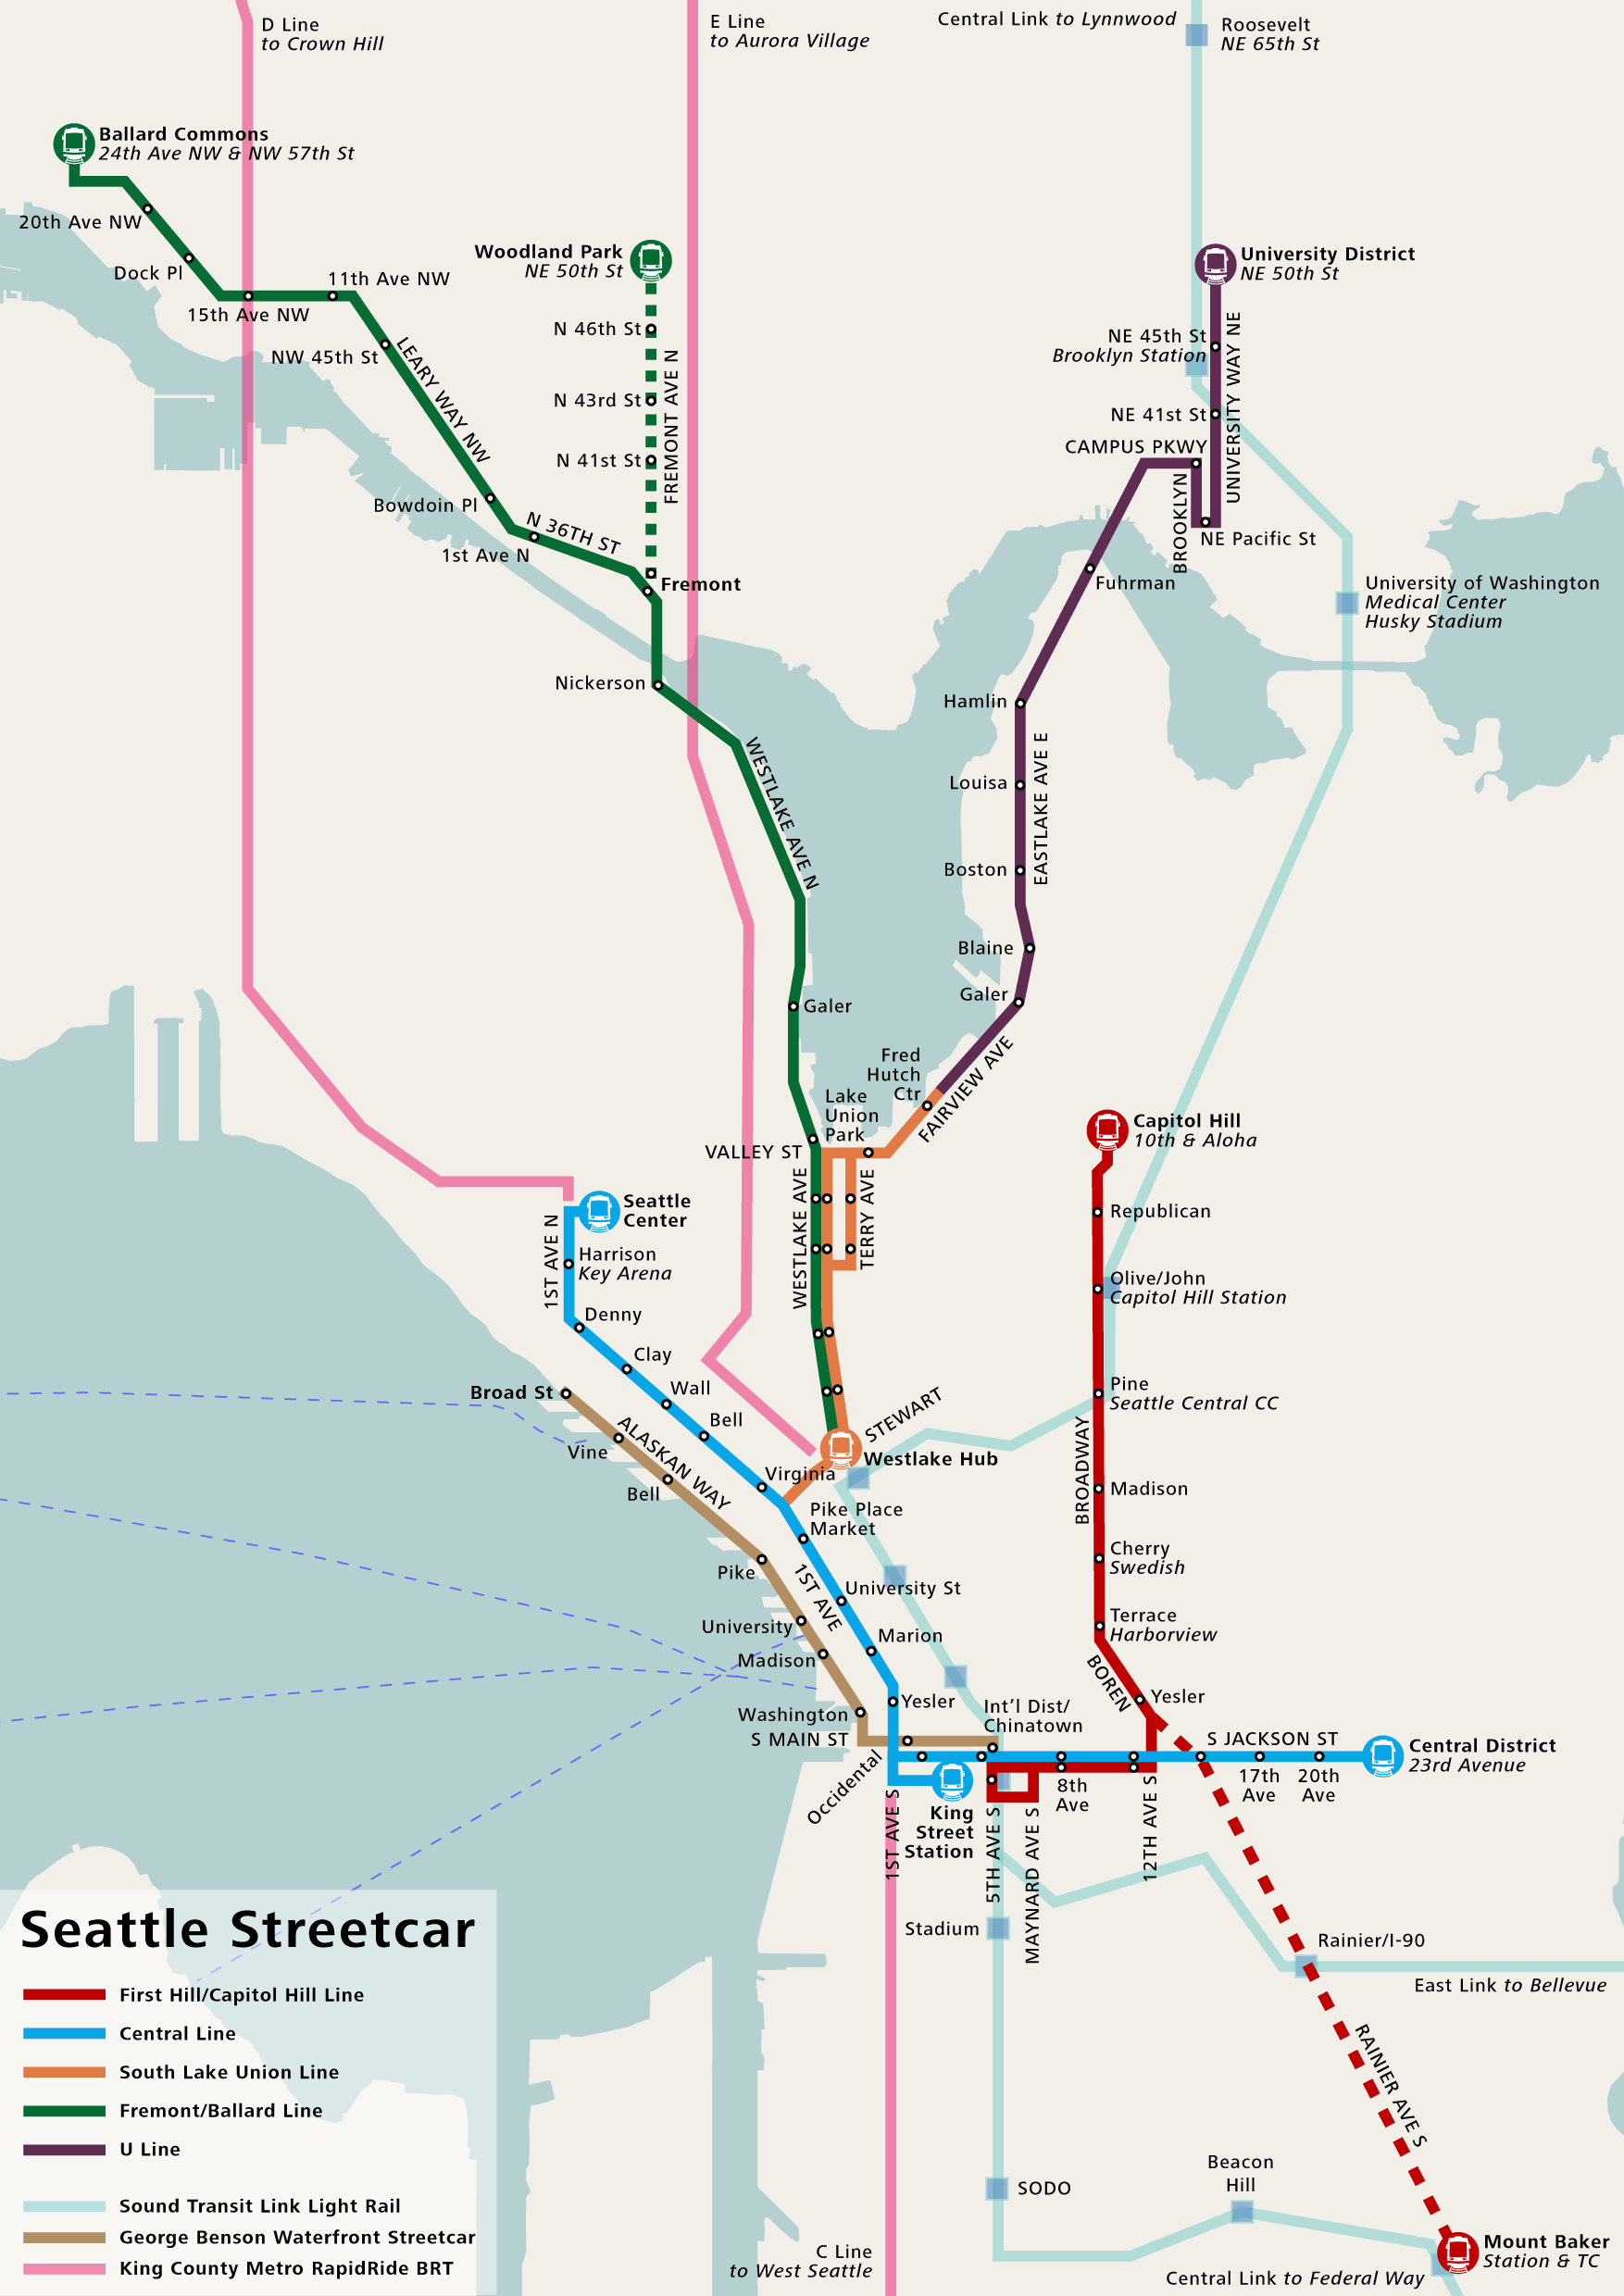 File:Seattle Streetcar Network Map Connections.png ... on skagit transit, seattle monorail project, waterfront streetcar, pierce transit, kitsap transit, seattle water taxi map, seattle trolley tours, sound transit map, sound transit, seattle trolley system, amazon south lake union seattle map, seattle center monorail, seattle street map, seattle light rail map, south lake union streetcar, sound transit express buses, seattle skyway map, seattle trolleybus map, seattle land value map, trolleybuses in seattle, seattle metro trip planner, west seattle water taxi, seattle schools map, seattle commuter rail map, seattle heavy rail map, seattle tree map, intercity transit, first hill streetcar, downtown seattle transit tunnel, seattle monorail map, link light rail, seattle star map, swift bus rapid transit, everett transit, massachusetts bay transportation authority map, community transit, seattle car map, seattle park map, metro transit,